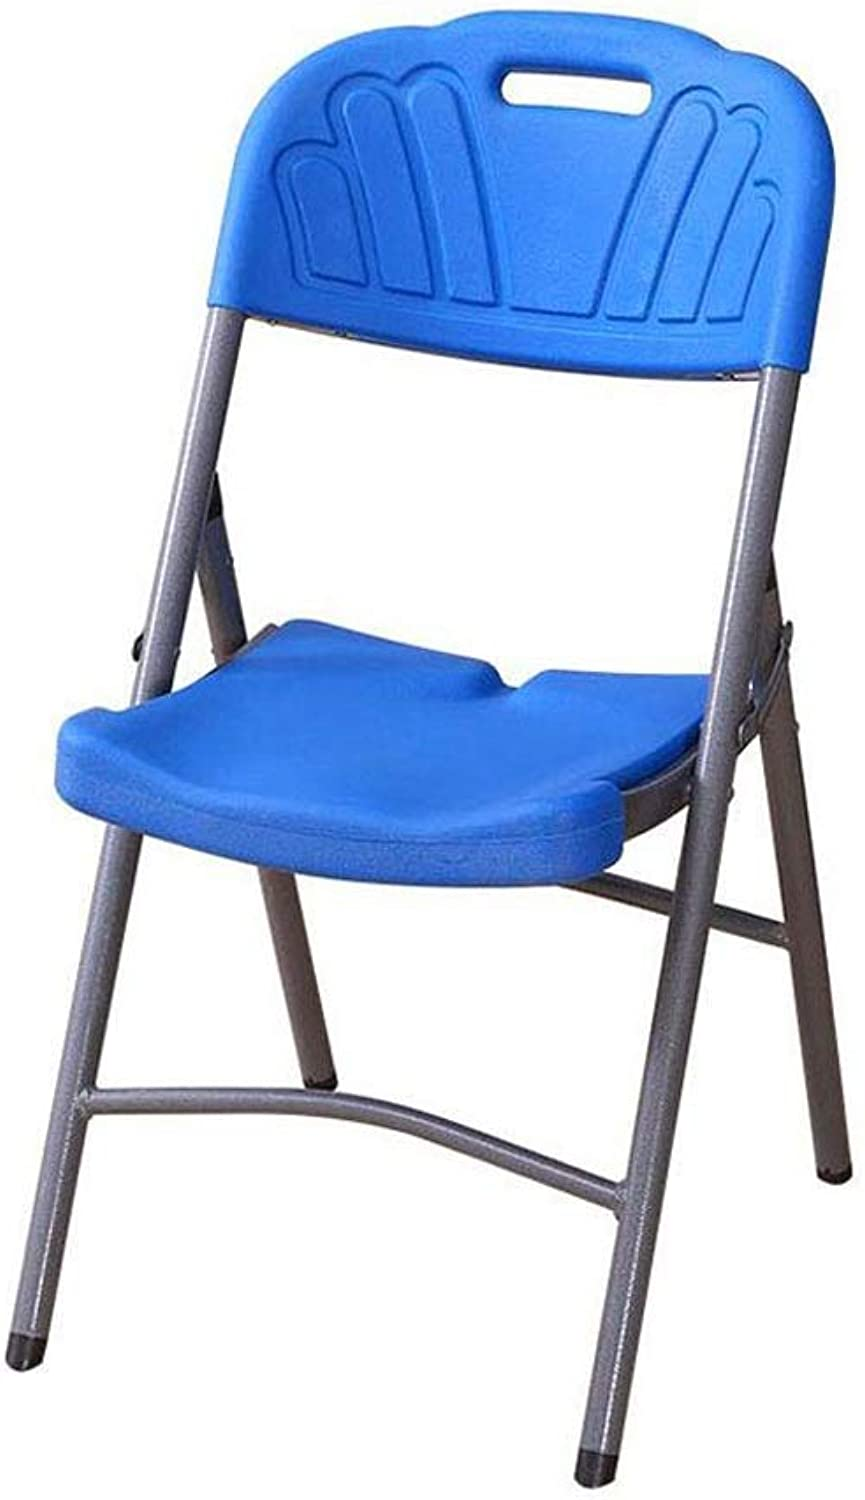 Folding Chair bluee Computer Chair Home Dining Chair Office Plastic Reception Chair Modern Seat